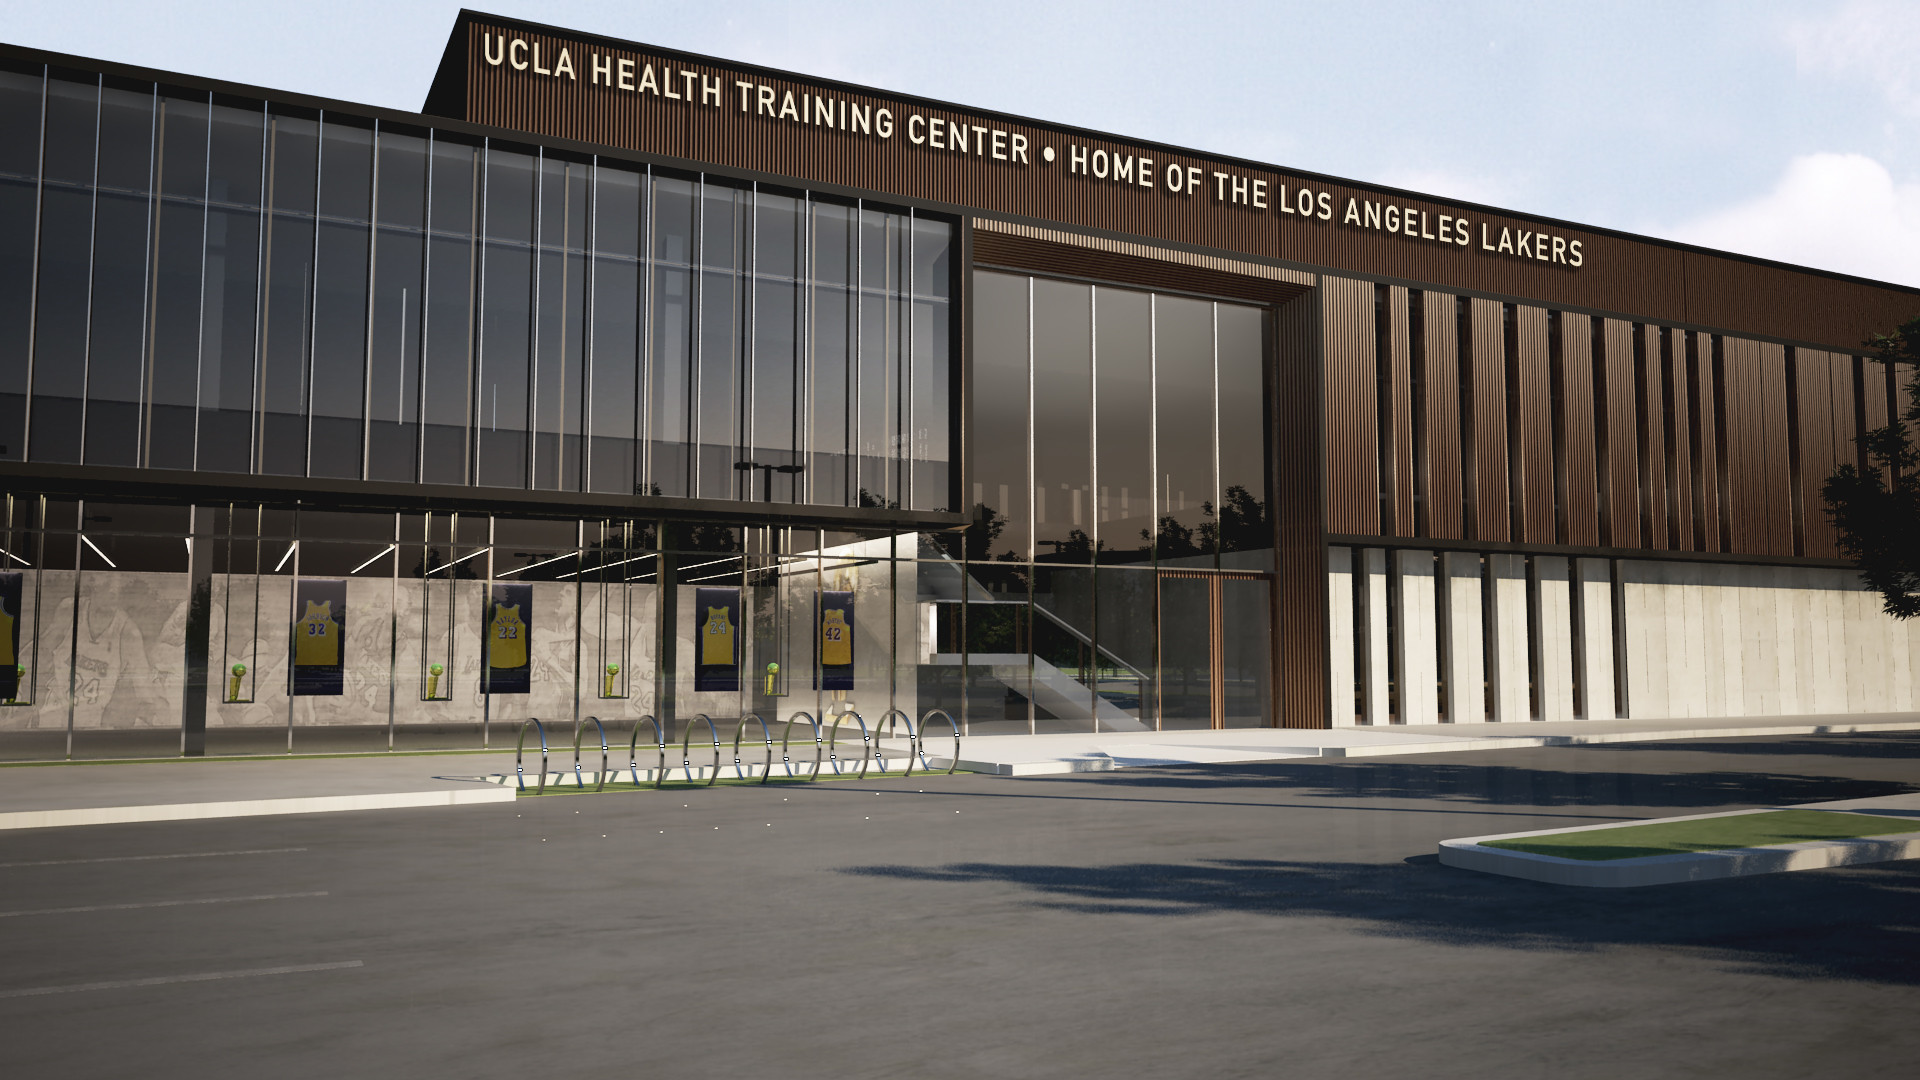 Lakers and UCLA health announce partnership and naming rights for new  training center